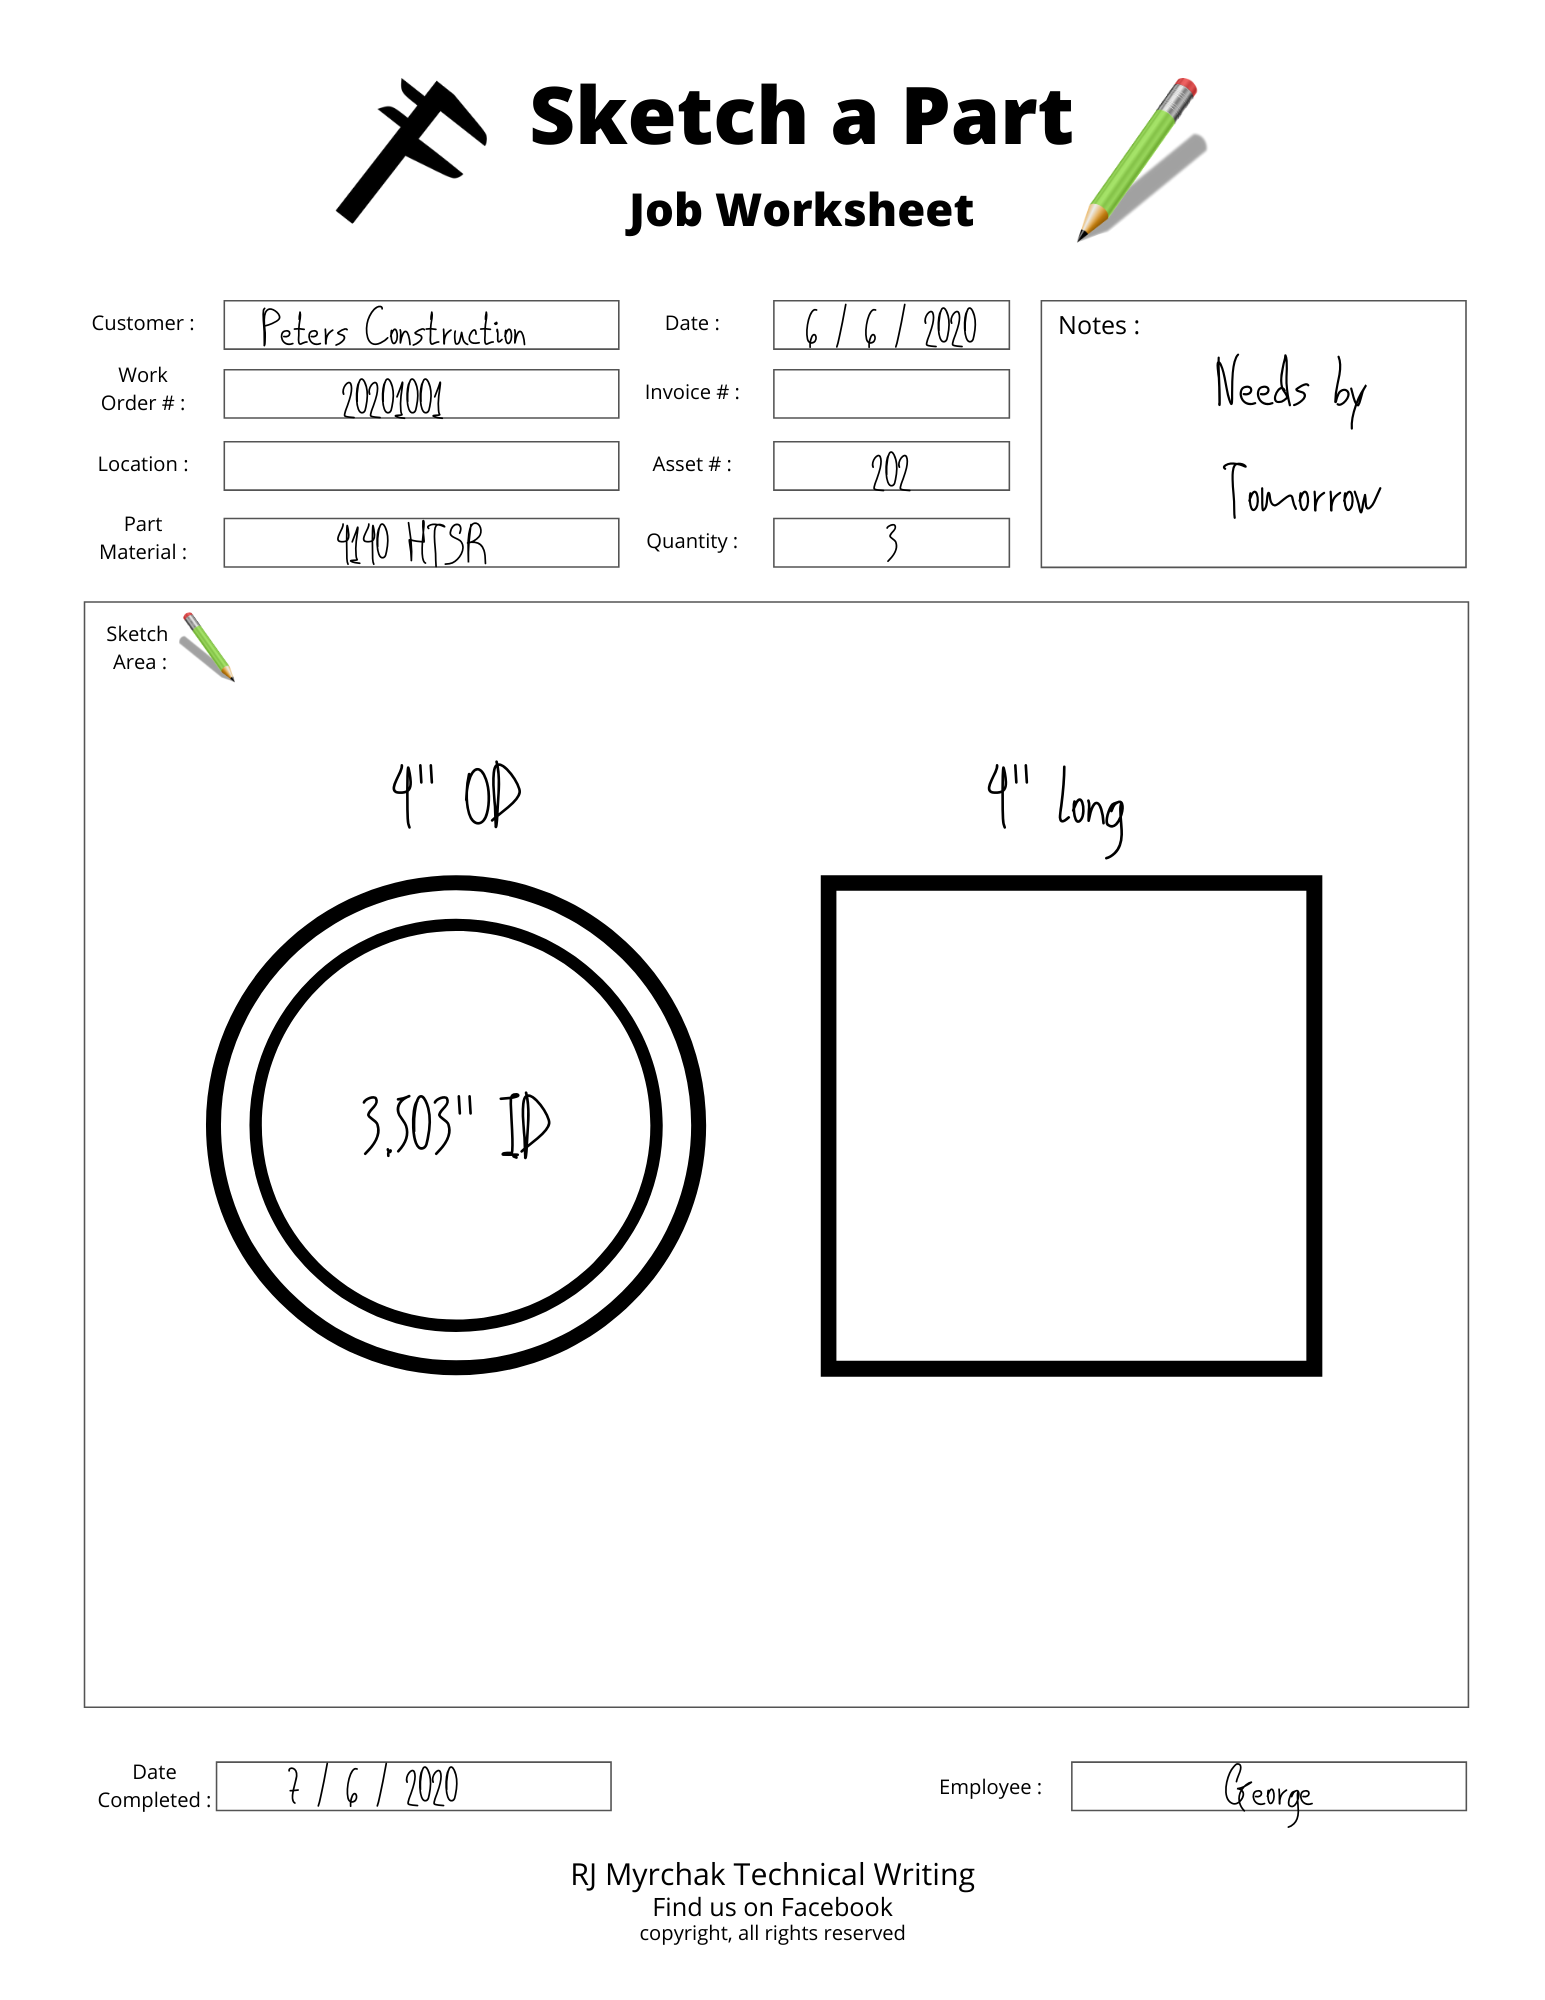 These specialty job worksheets are designed for Machine